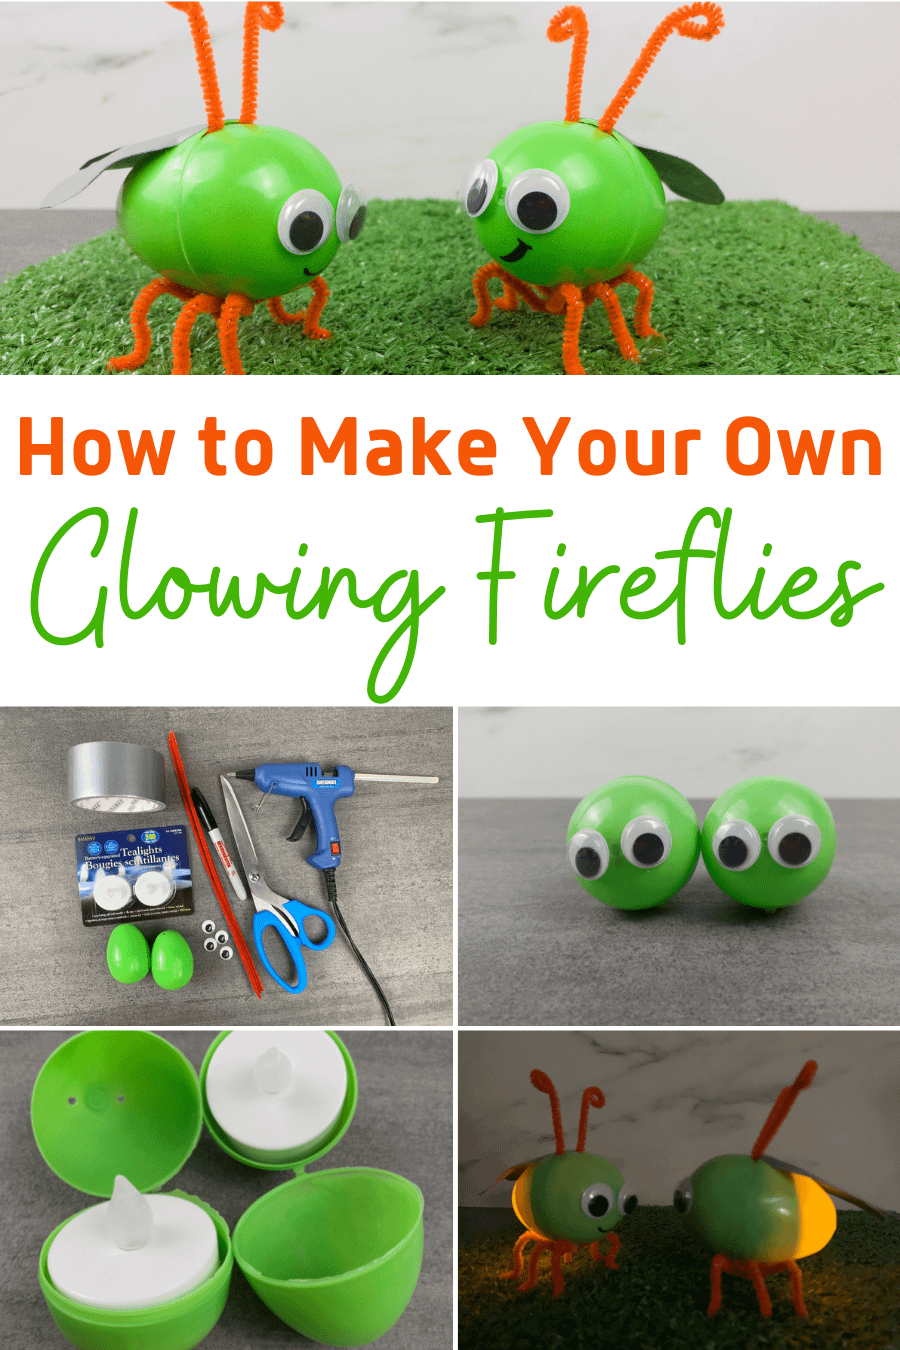 How to Make Your Own Glowing Fireflies - Easy Kids Craft